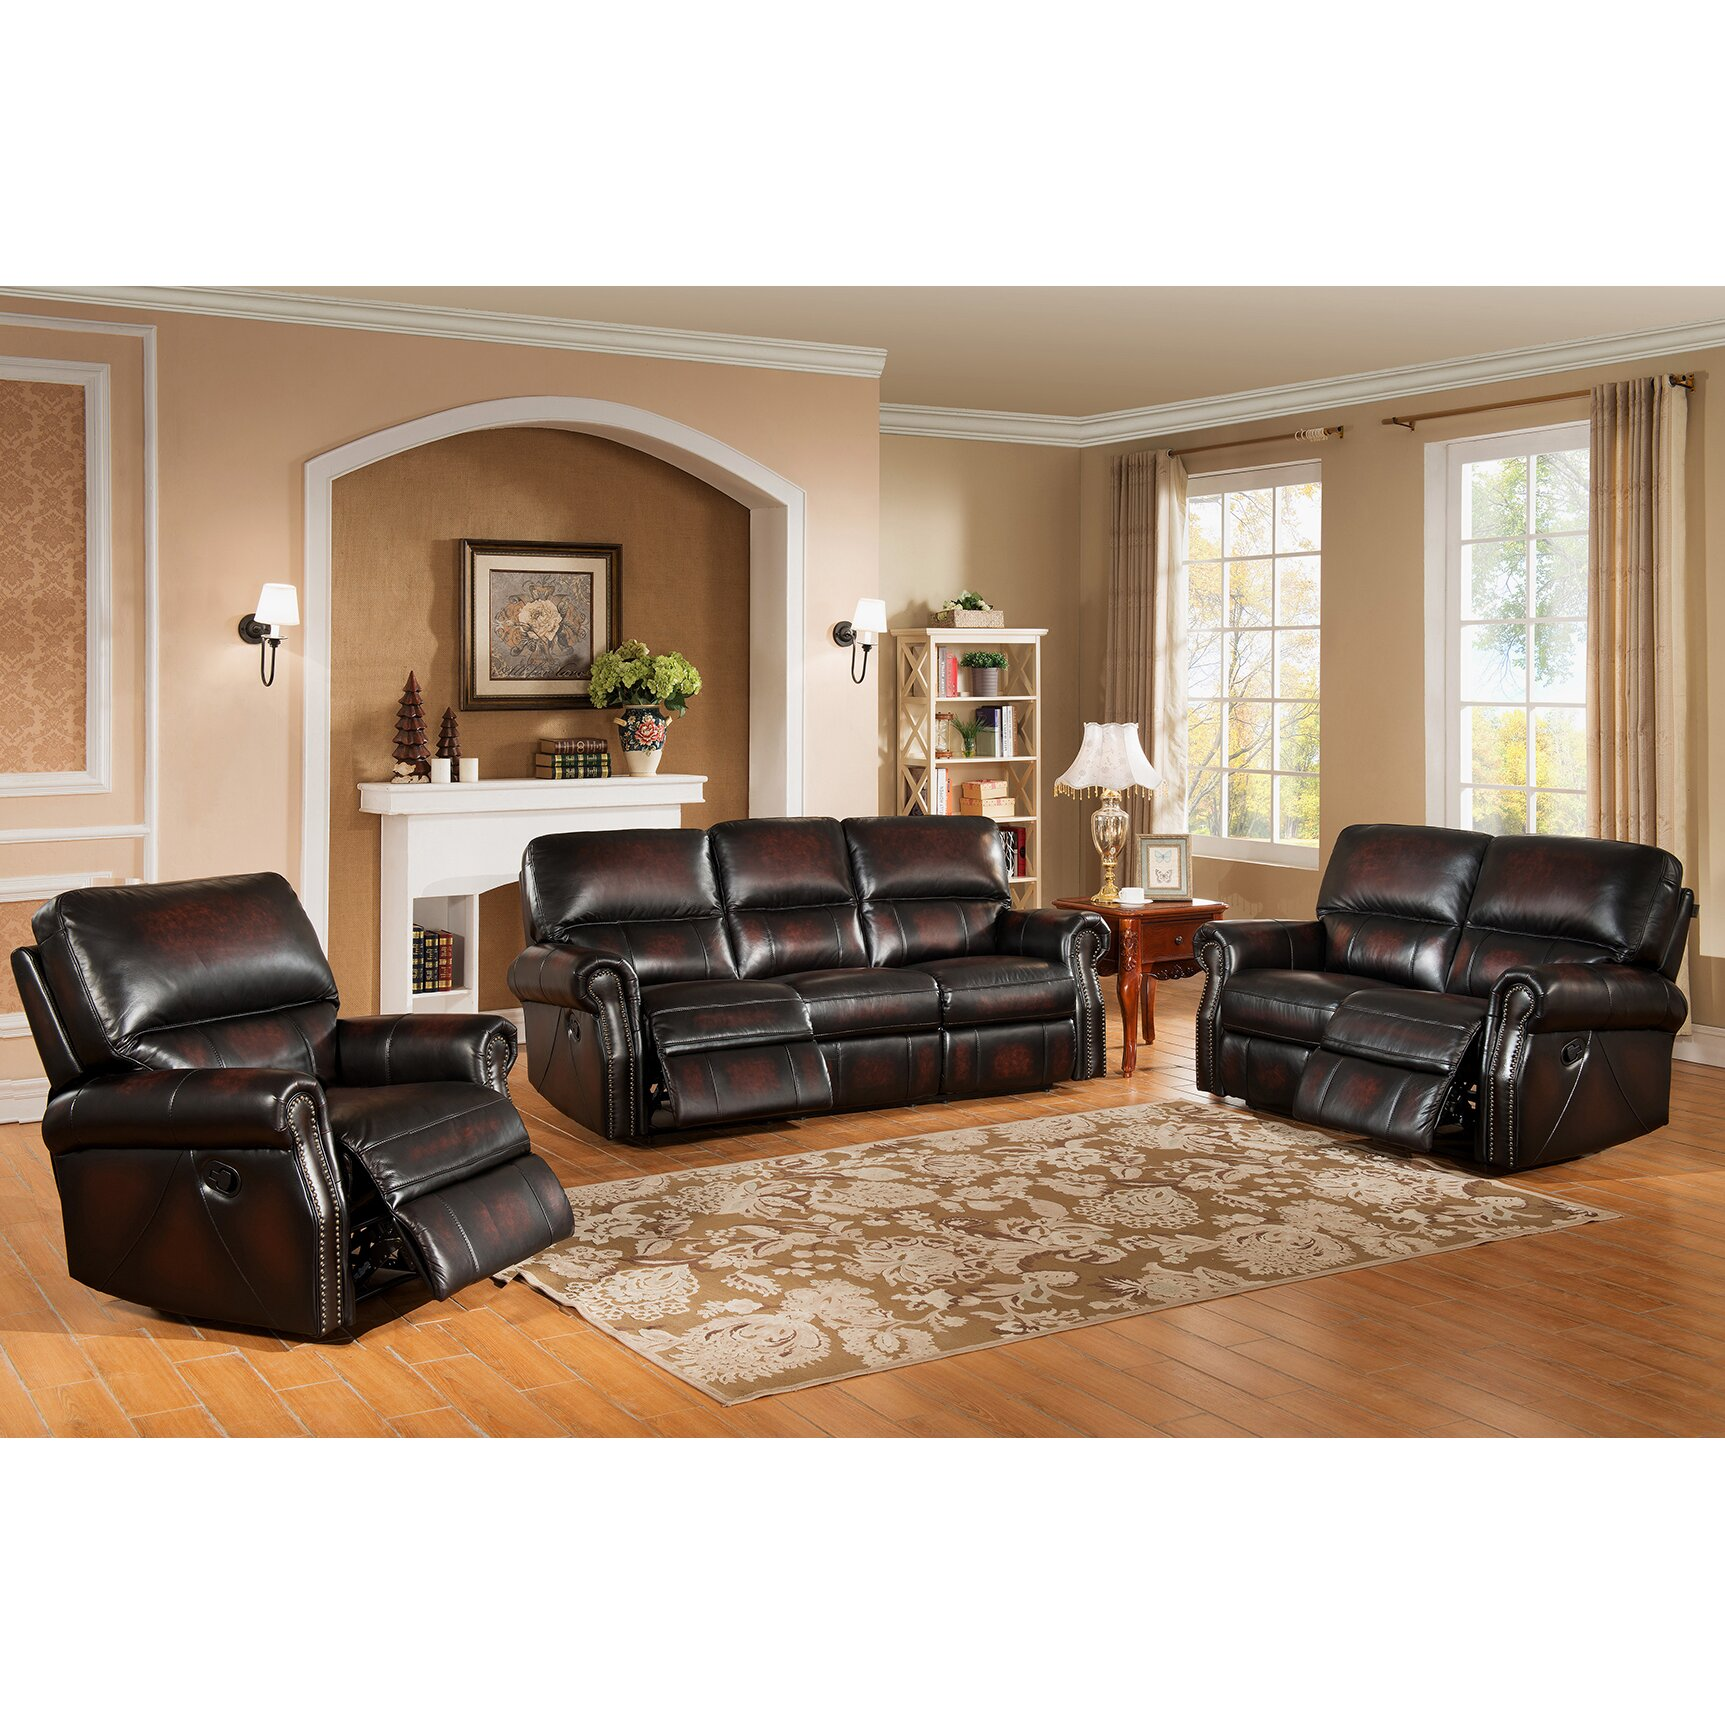 nevada 3 piece leather living room set wayfair